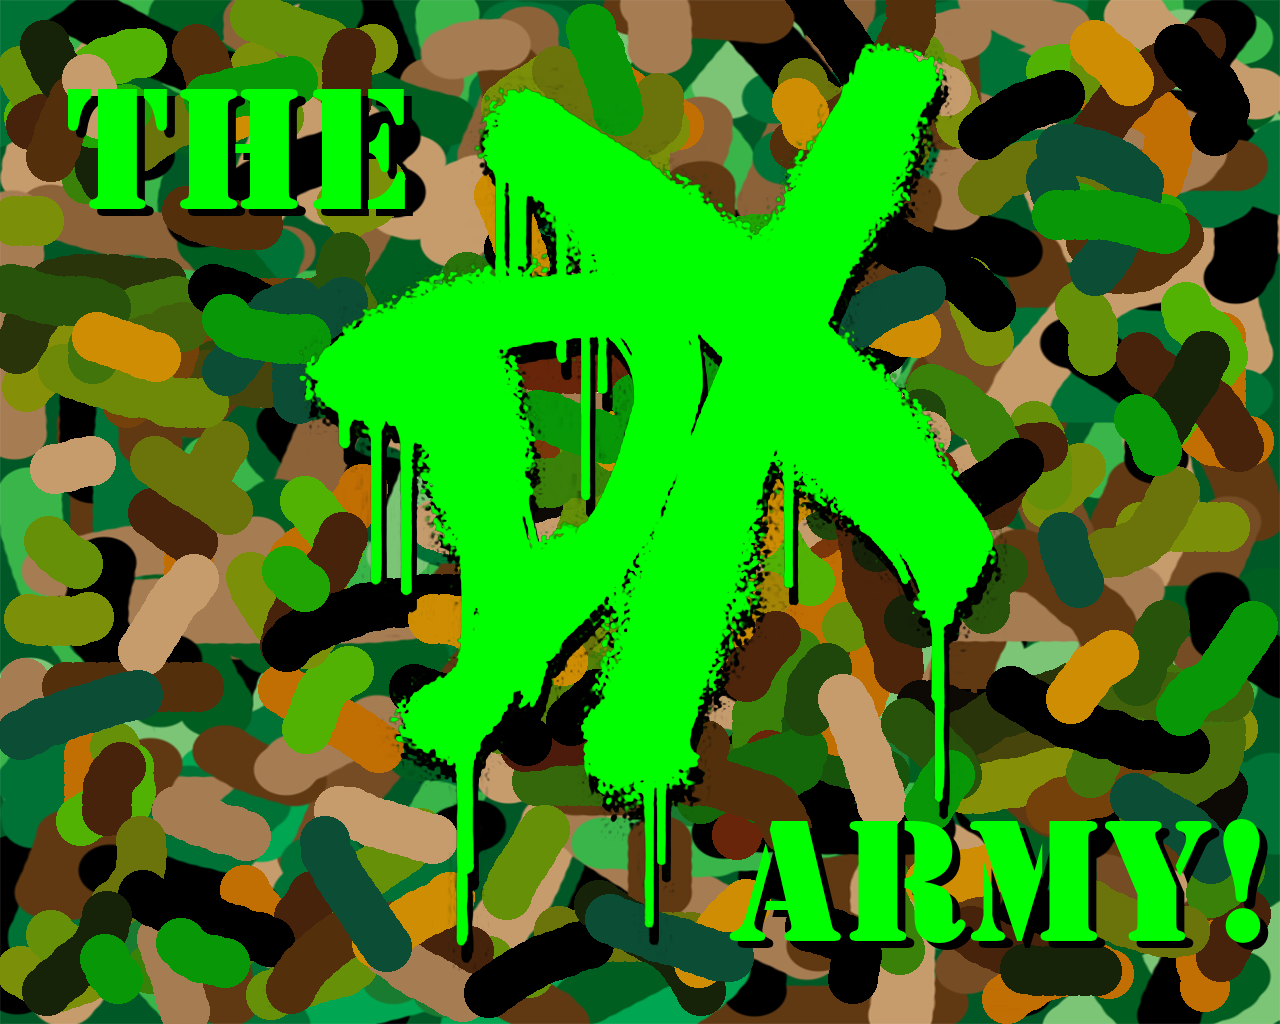 http://2.bp.blogspot.com/-e-toZGISjsg/ThwtDfg50QI/AAAAAAAAAdQ/DmC9ZOy6mjg/s1600/The_DX_Army_Wallpaper_by_666qqq666.png